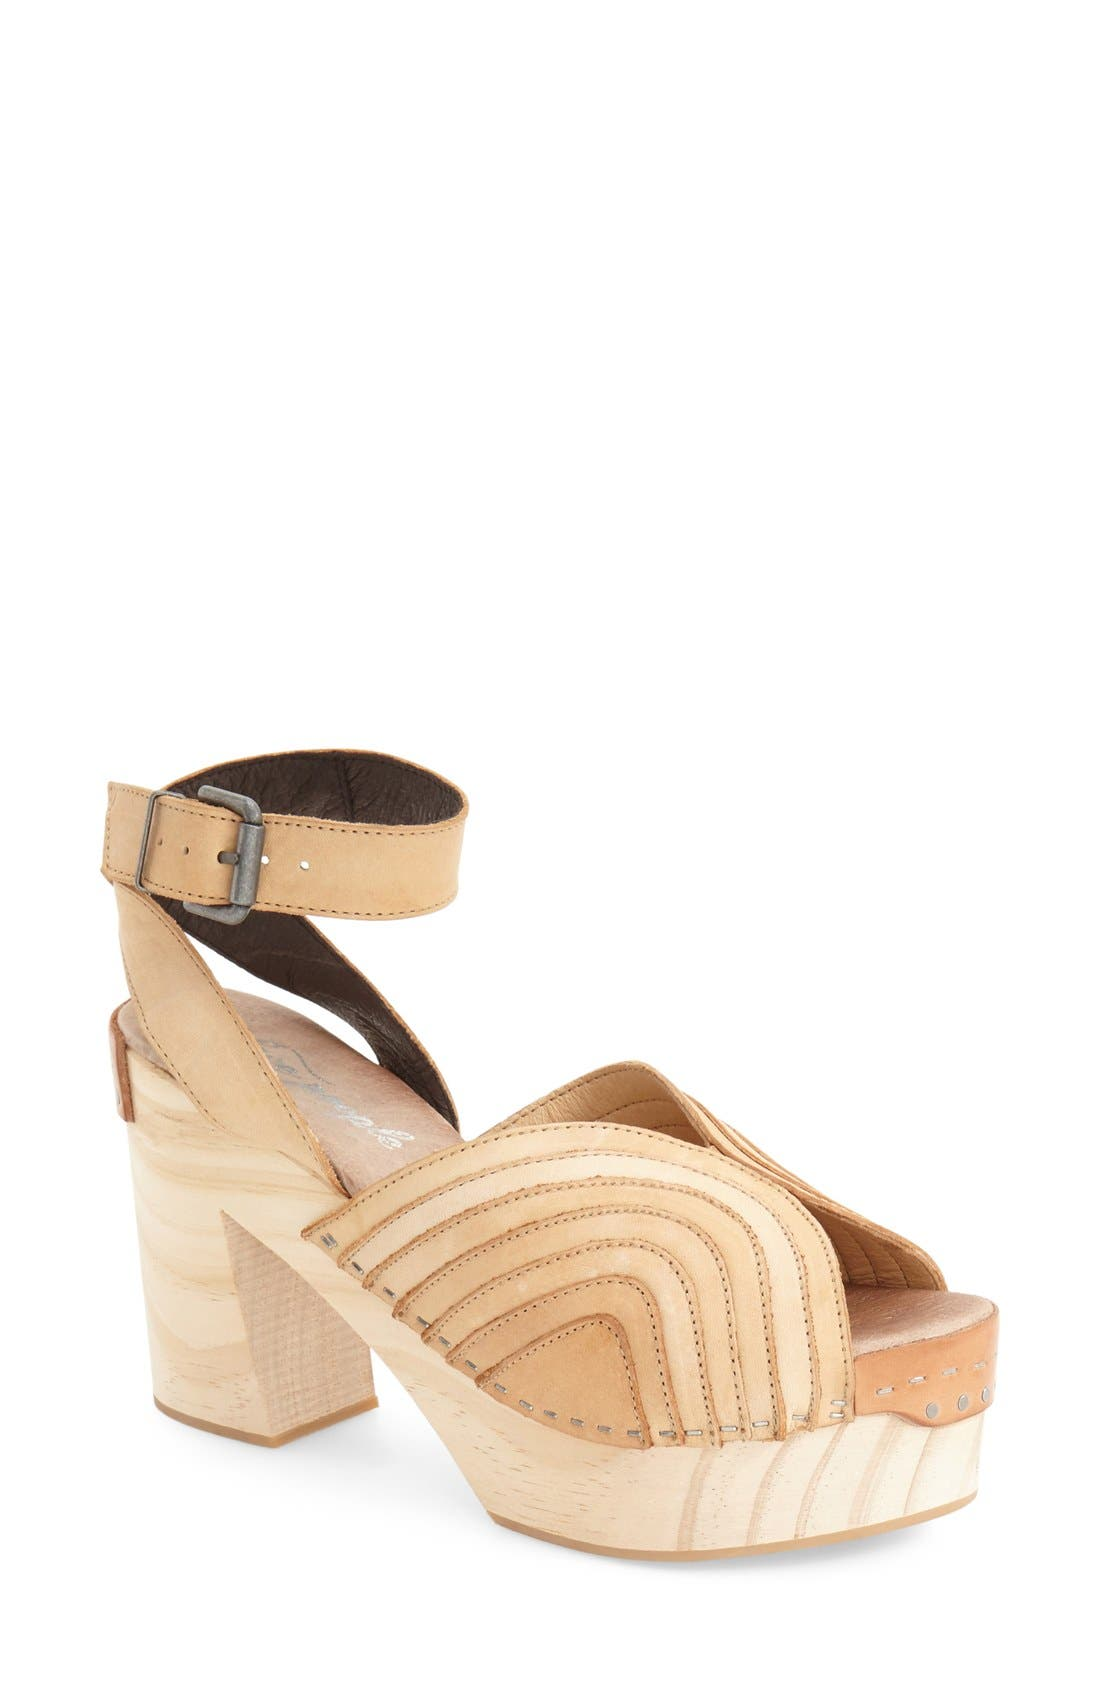 Alternate Image 1 Selected - Free People 'Orion' Open Toe Clog (Women)